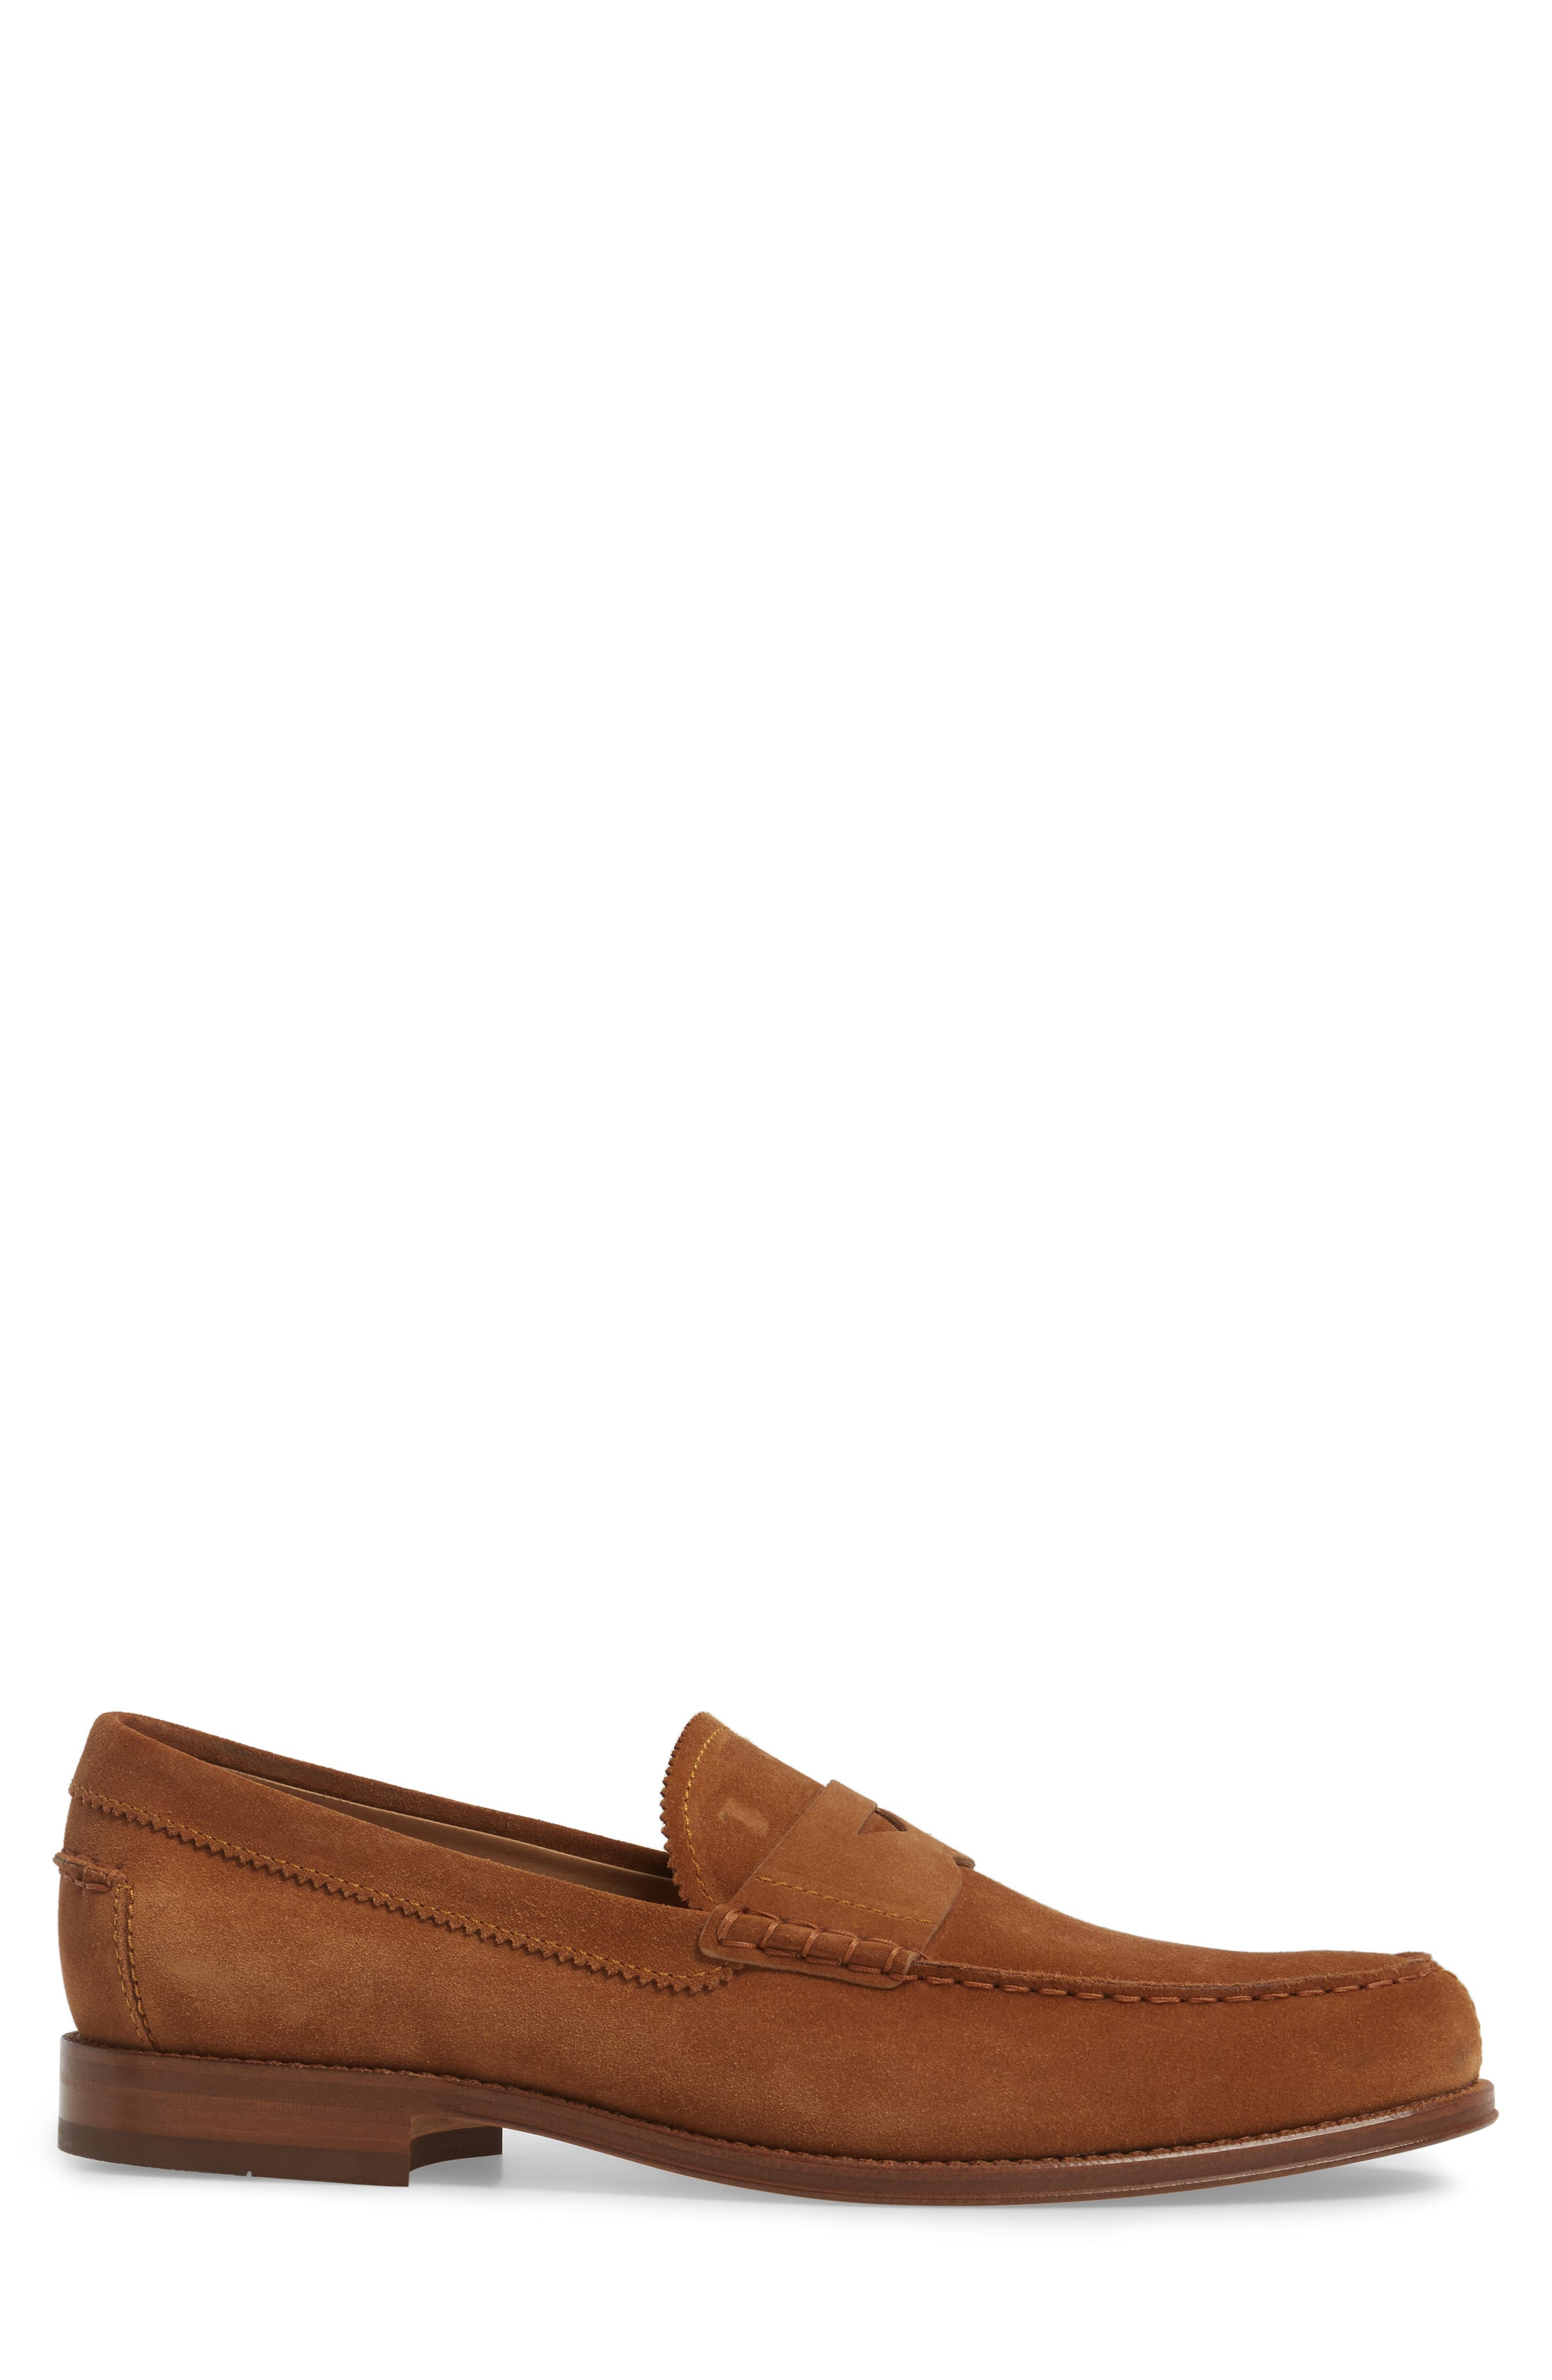 Suede Penny Loafer,                             Alternate thumbnail 3, color,                             215